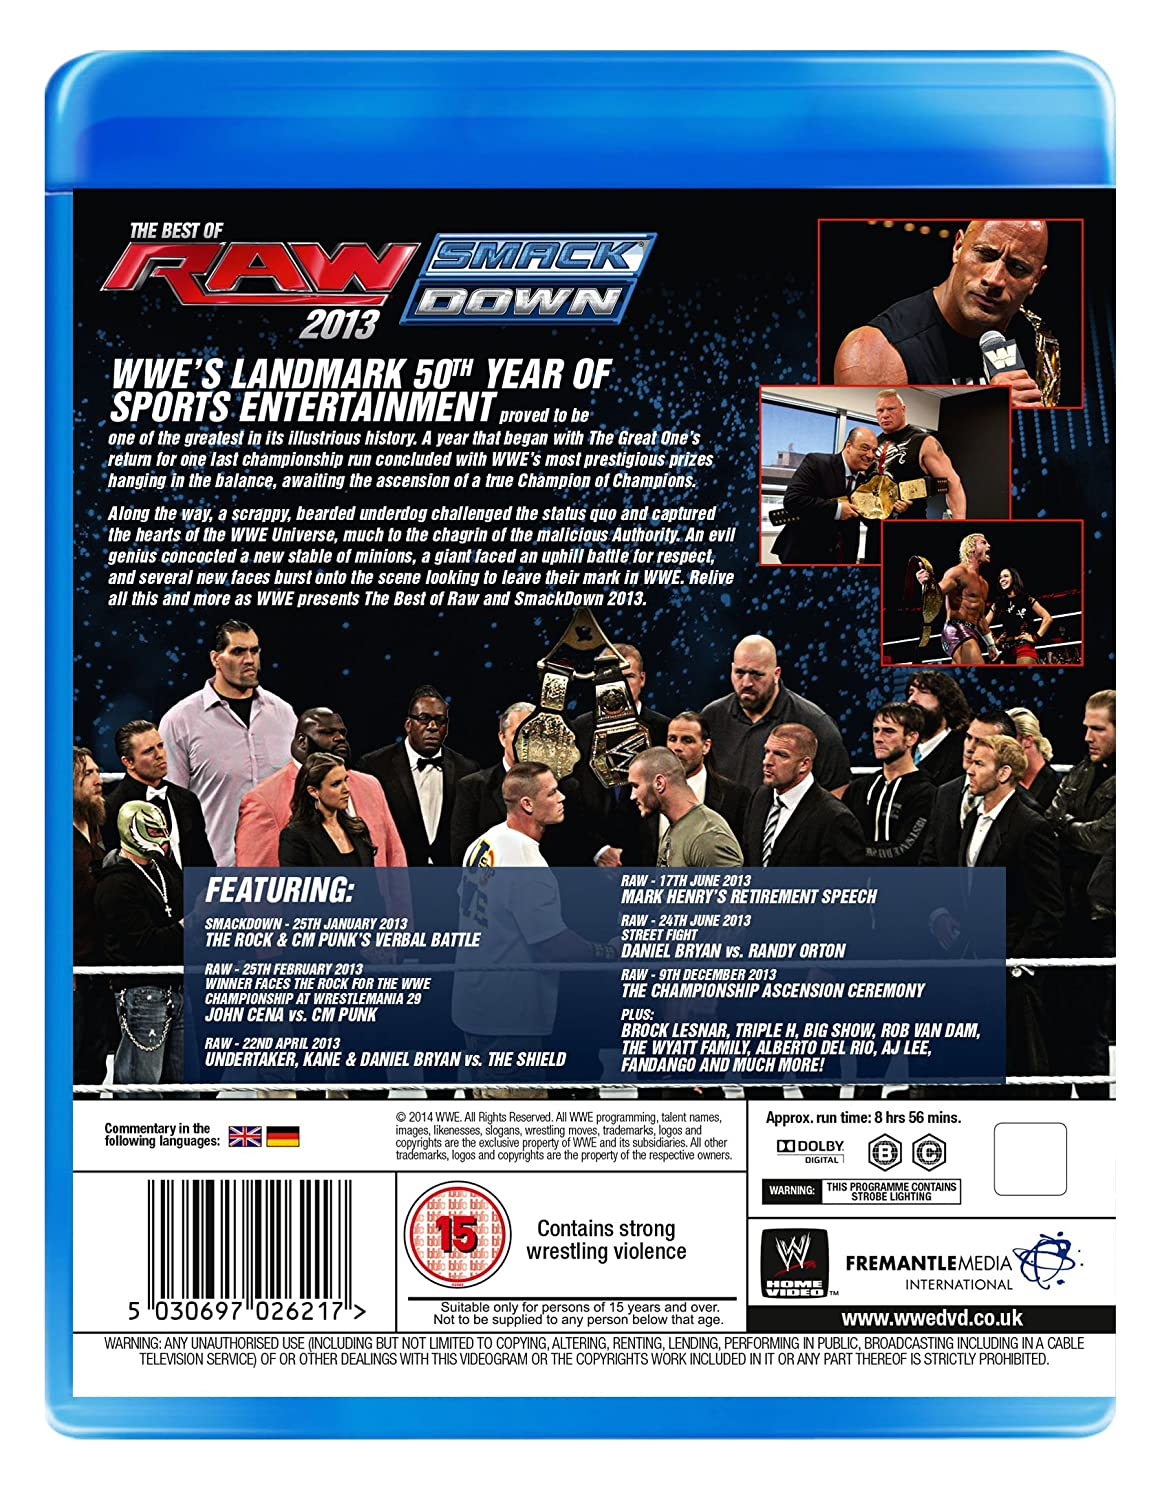 WWE: The Best Of Raw And Smackdown 2013 [Blu-ray]: Amazon co